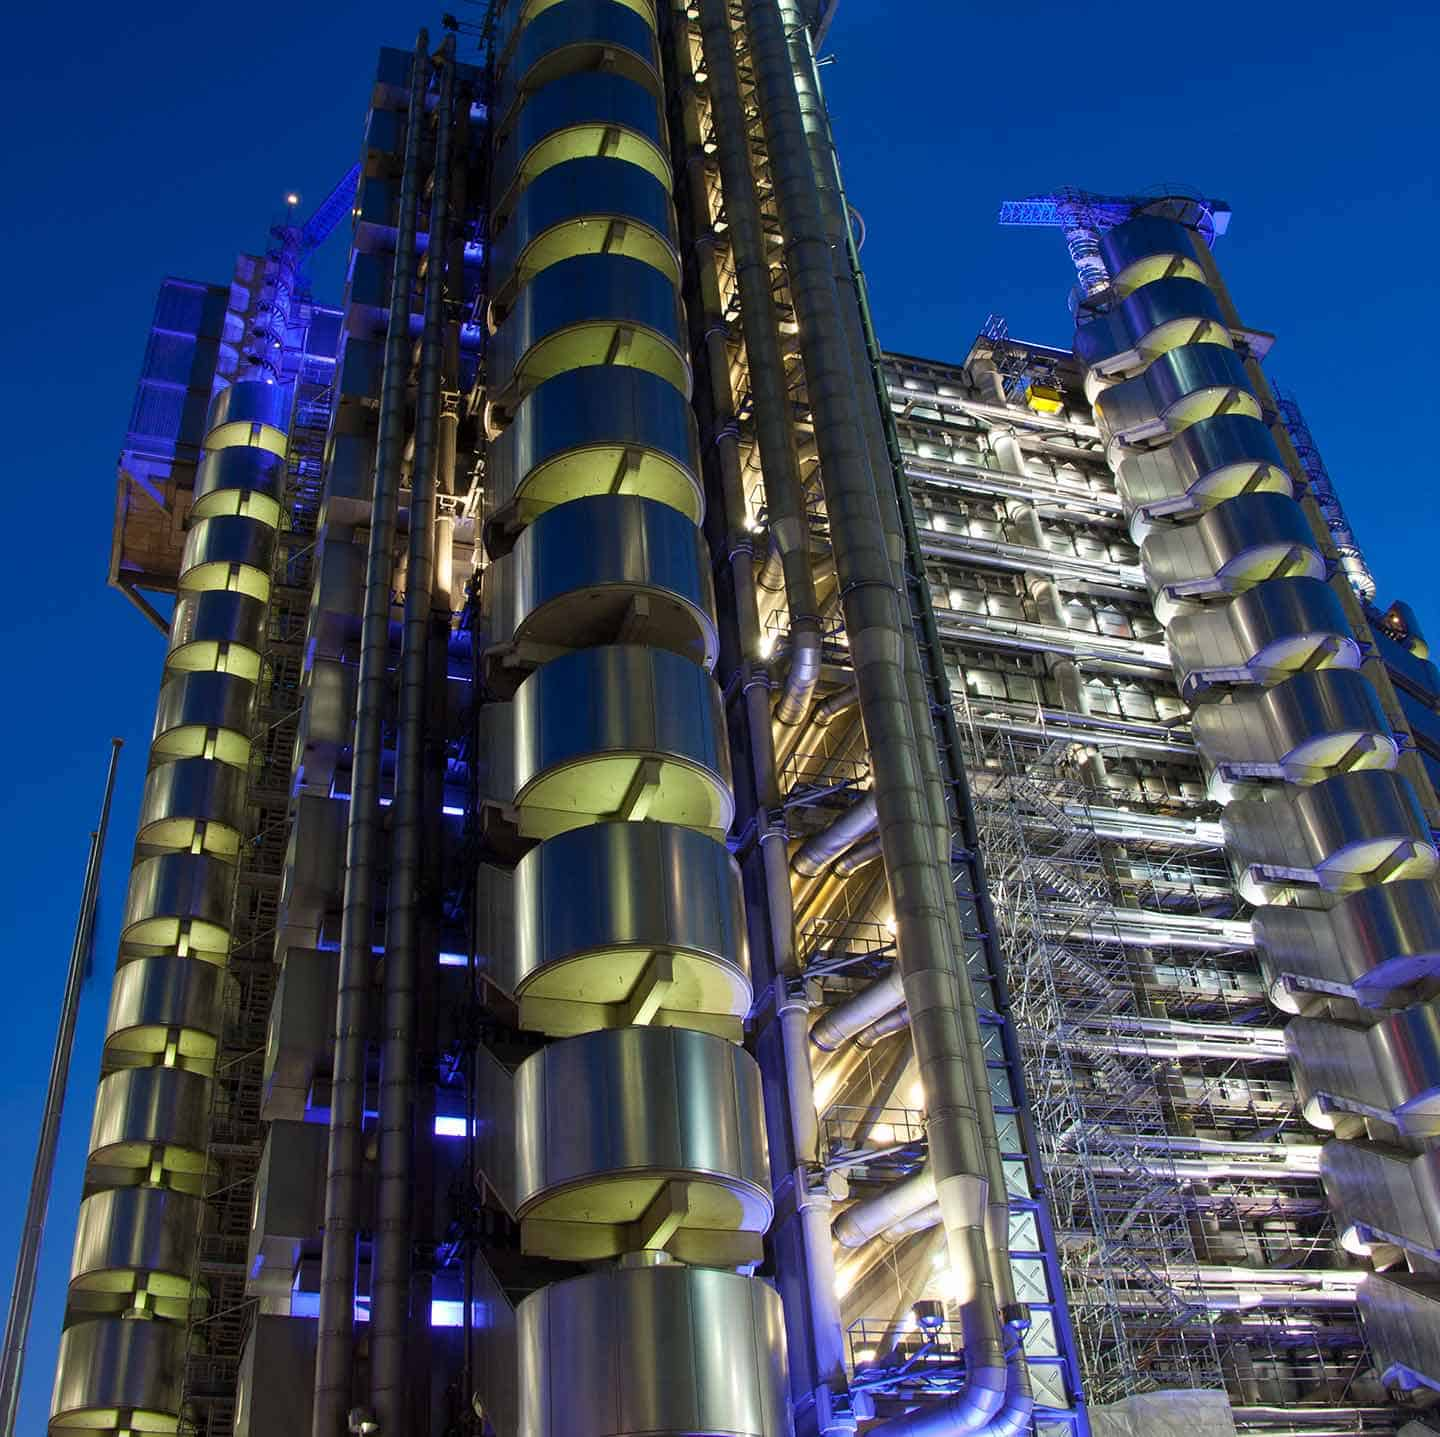 Image of the Lloyd's Insurance Building in London